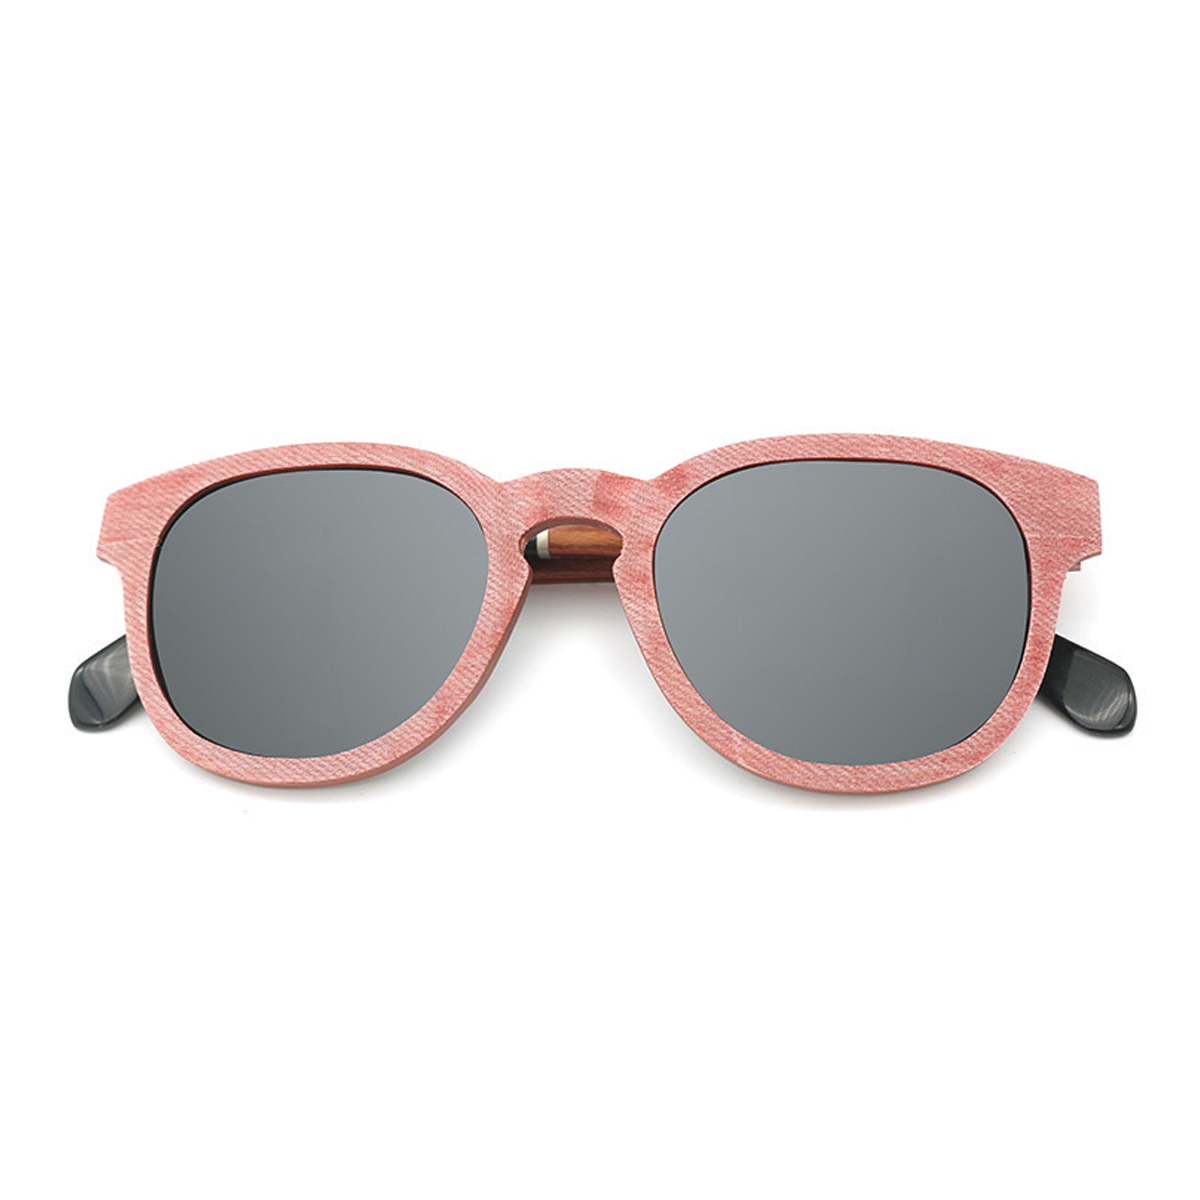 Haseley & Co Sunglasses